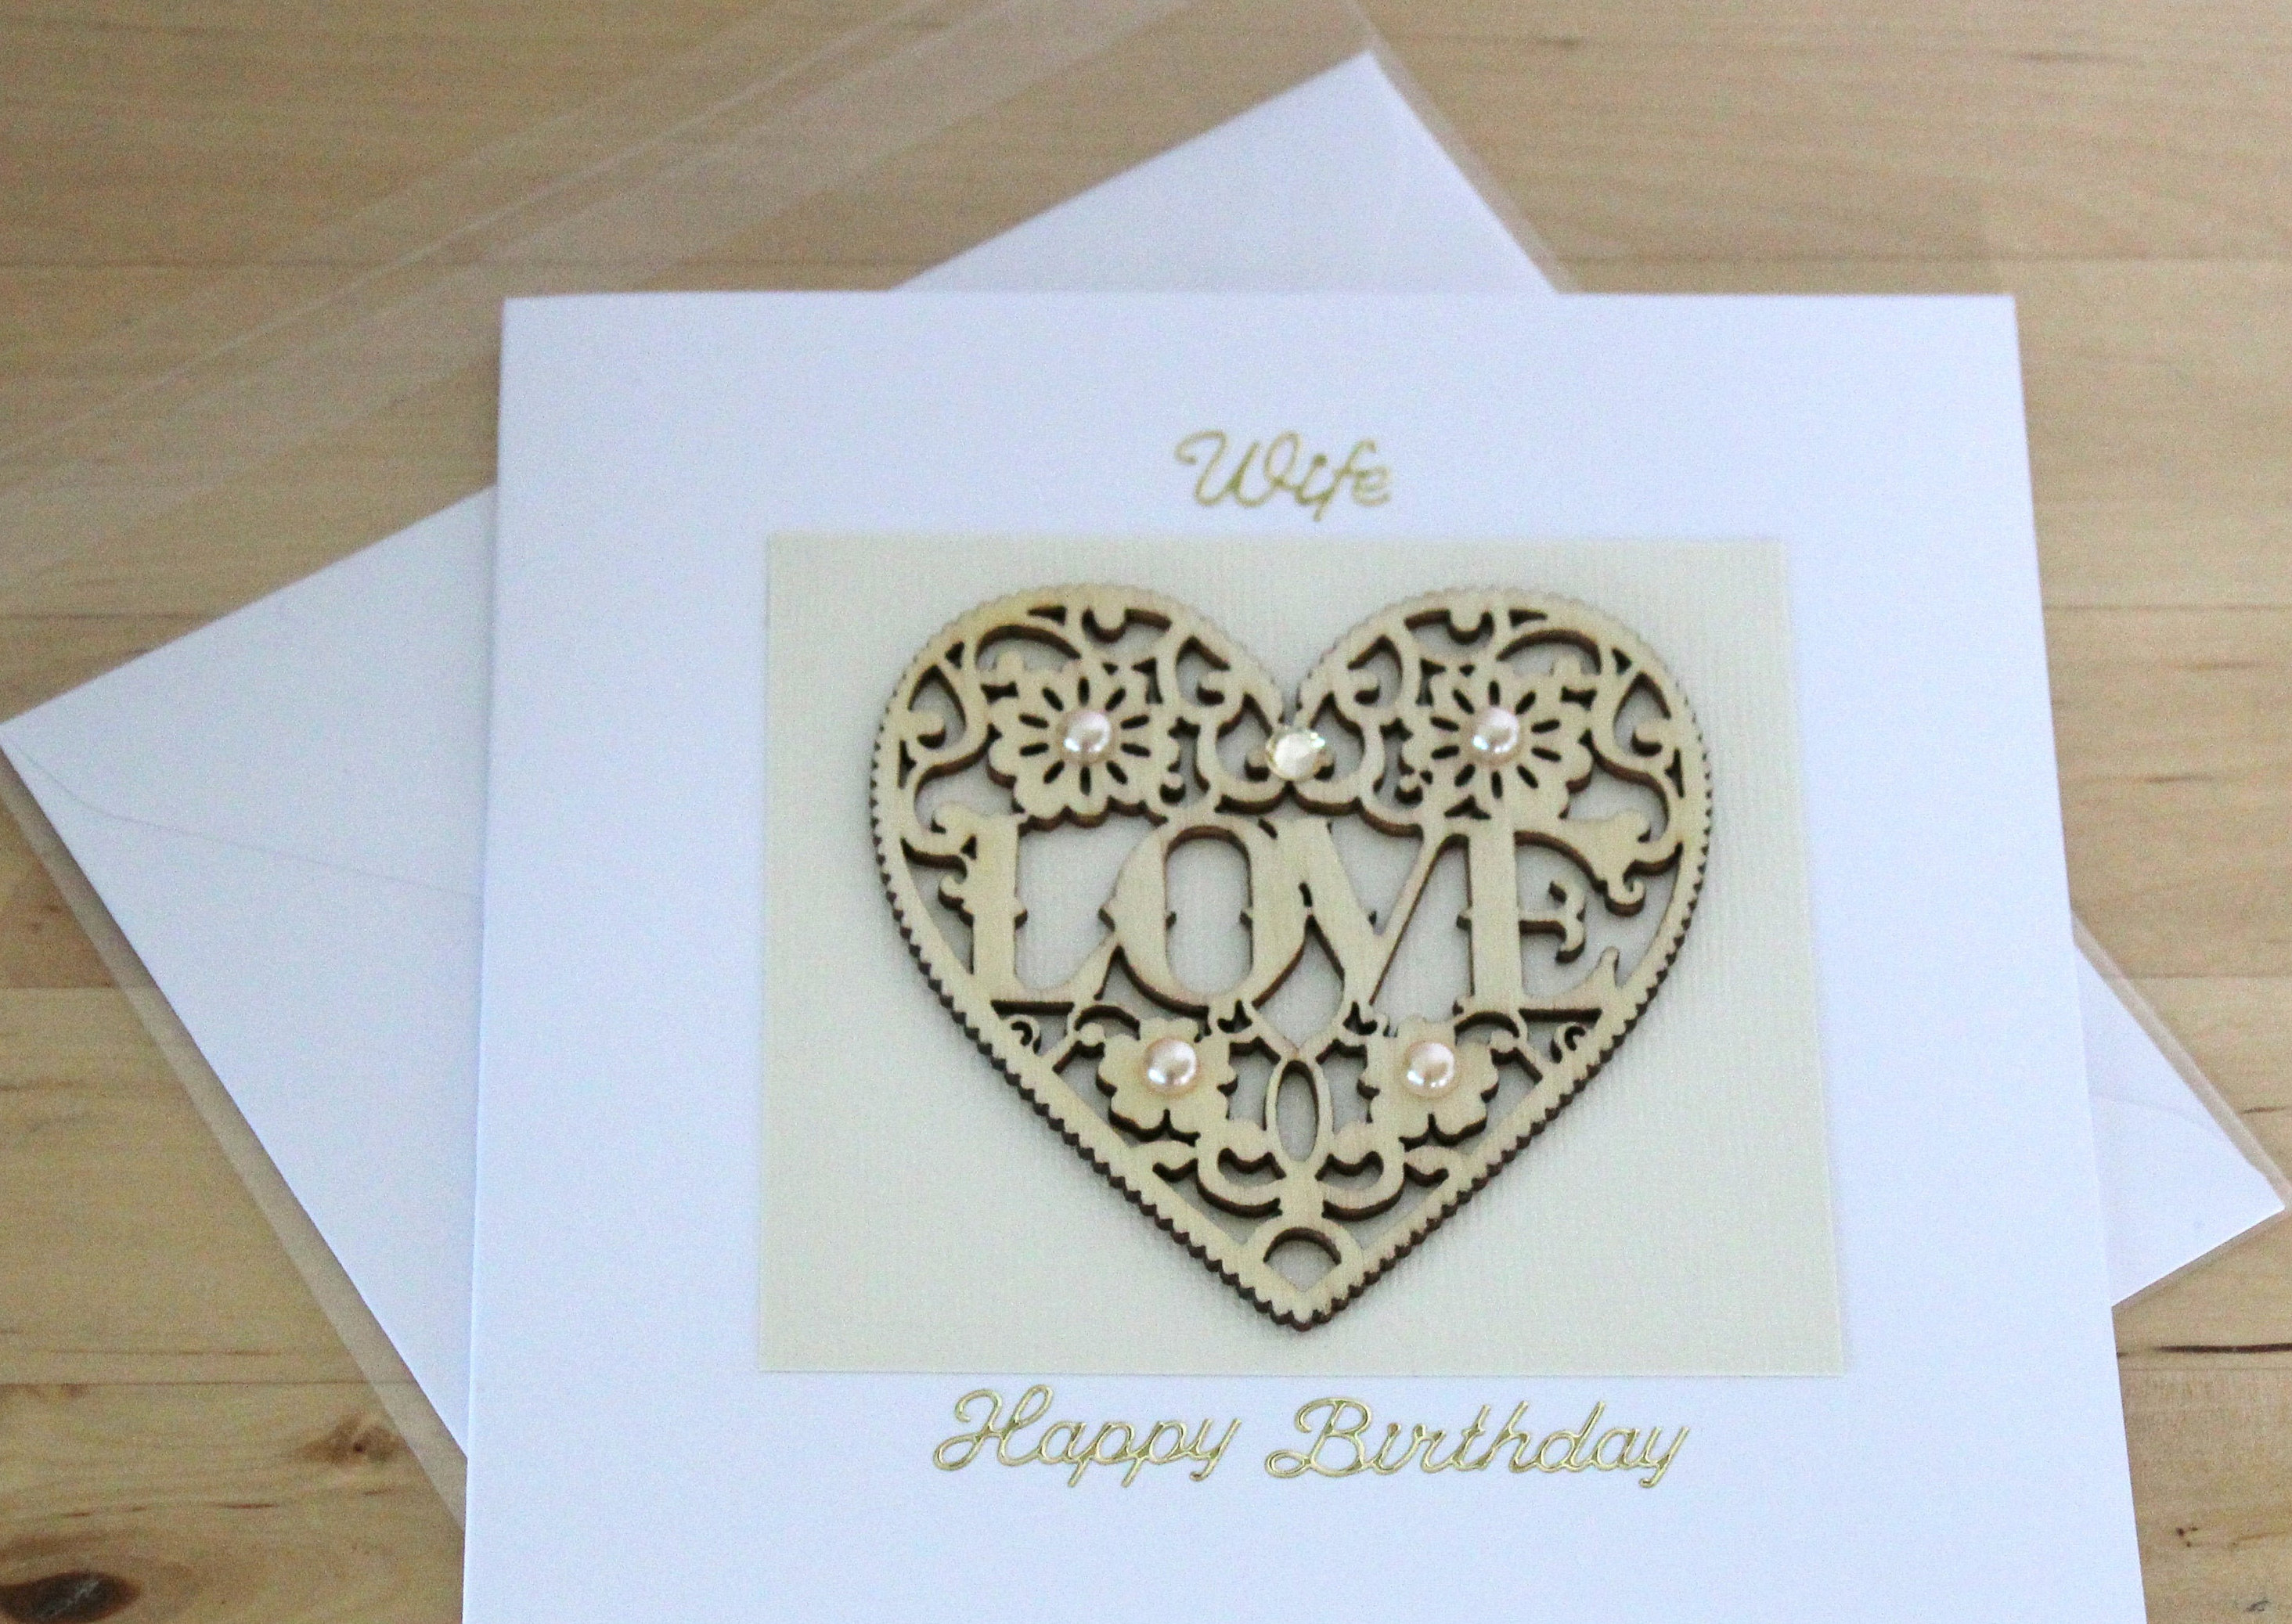 Birthday Card Ideas For Wife Luxury Unique Wife Birthday Card Gift Wife Birthday Card Gift Wife Wooden Birthday Card Gift Heart Birthday Card Gift For Wife